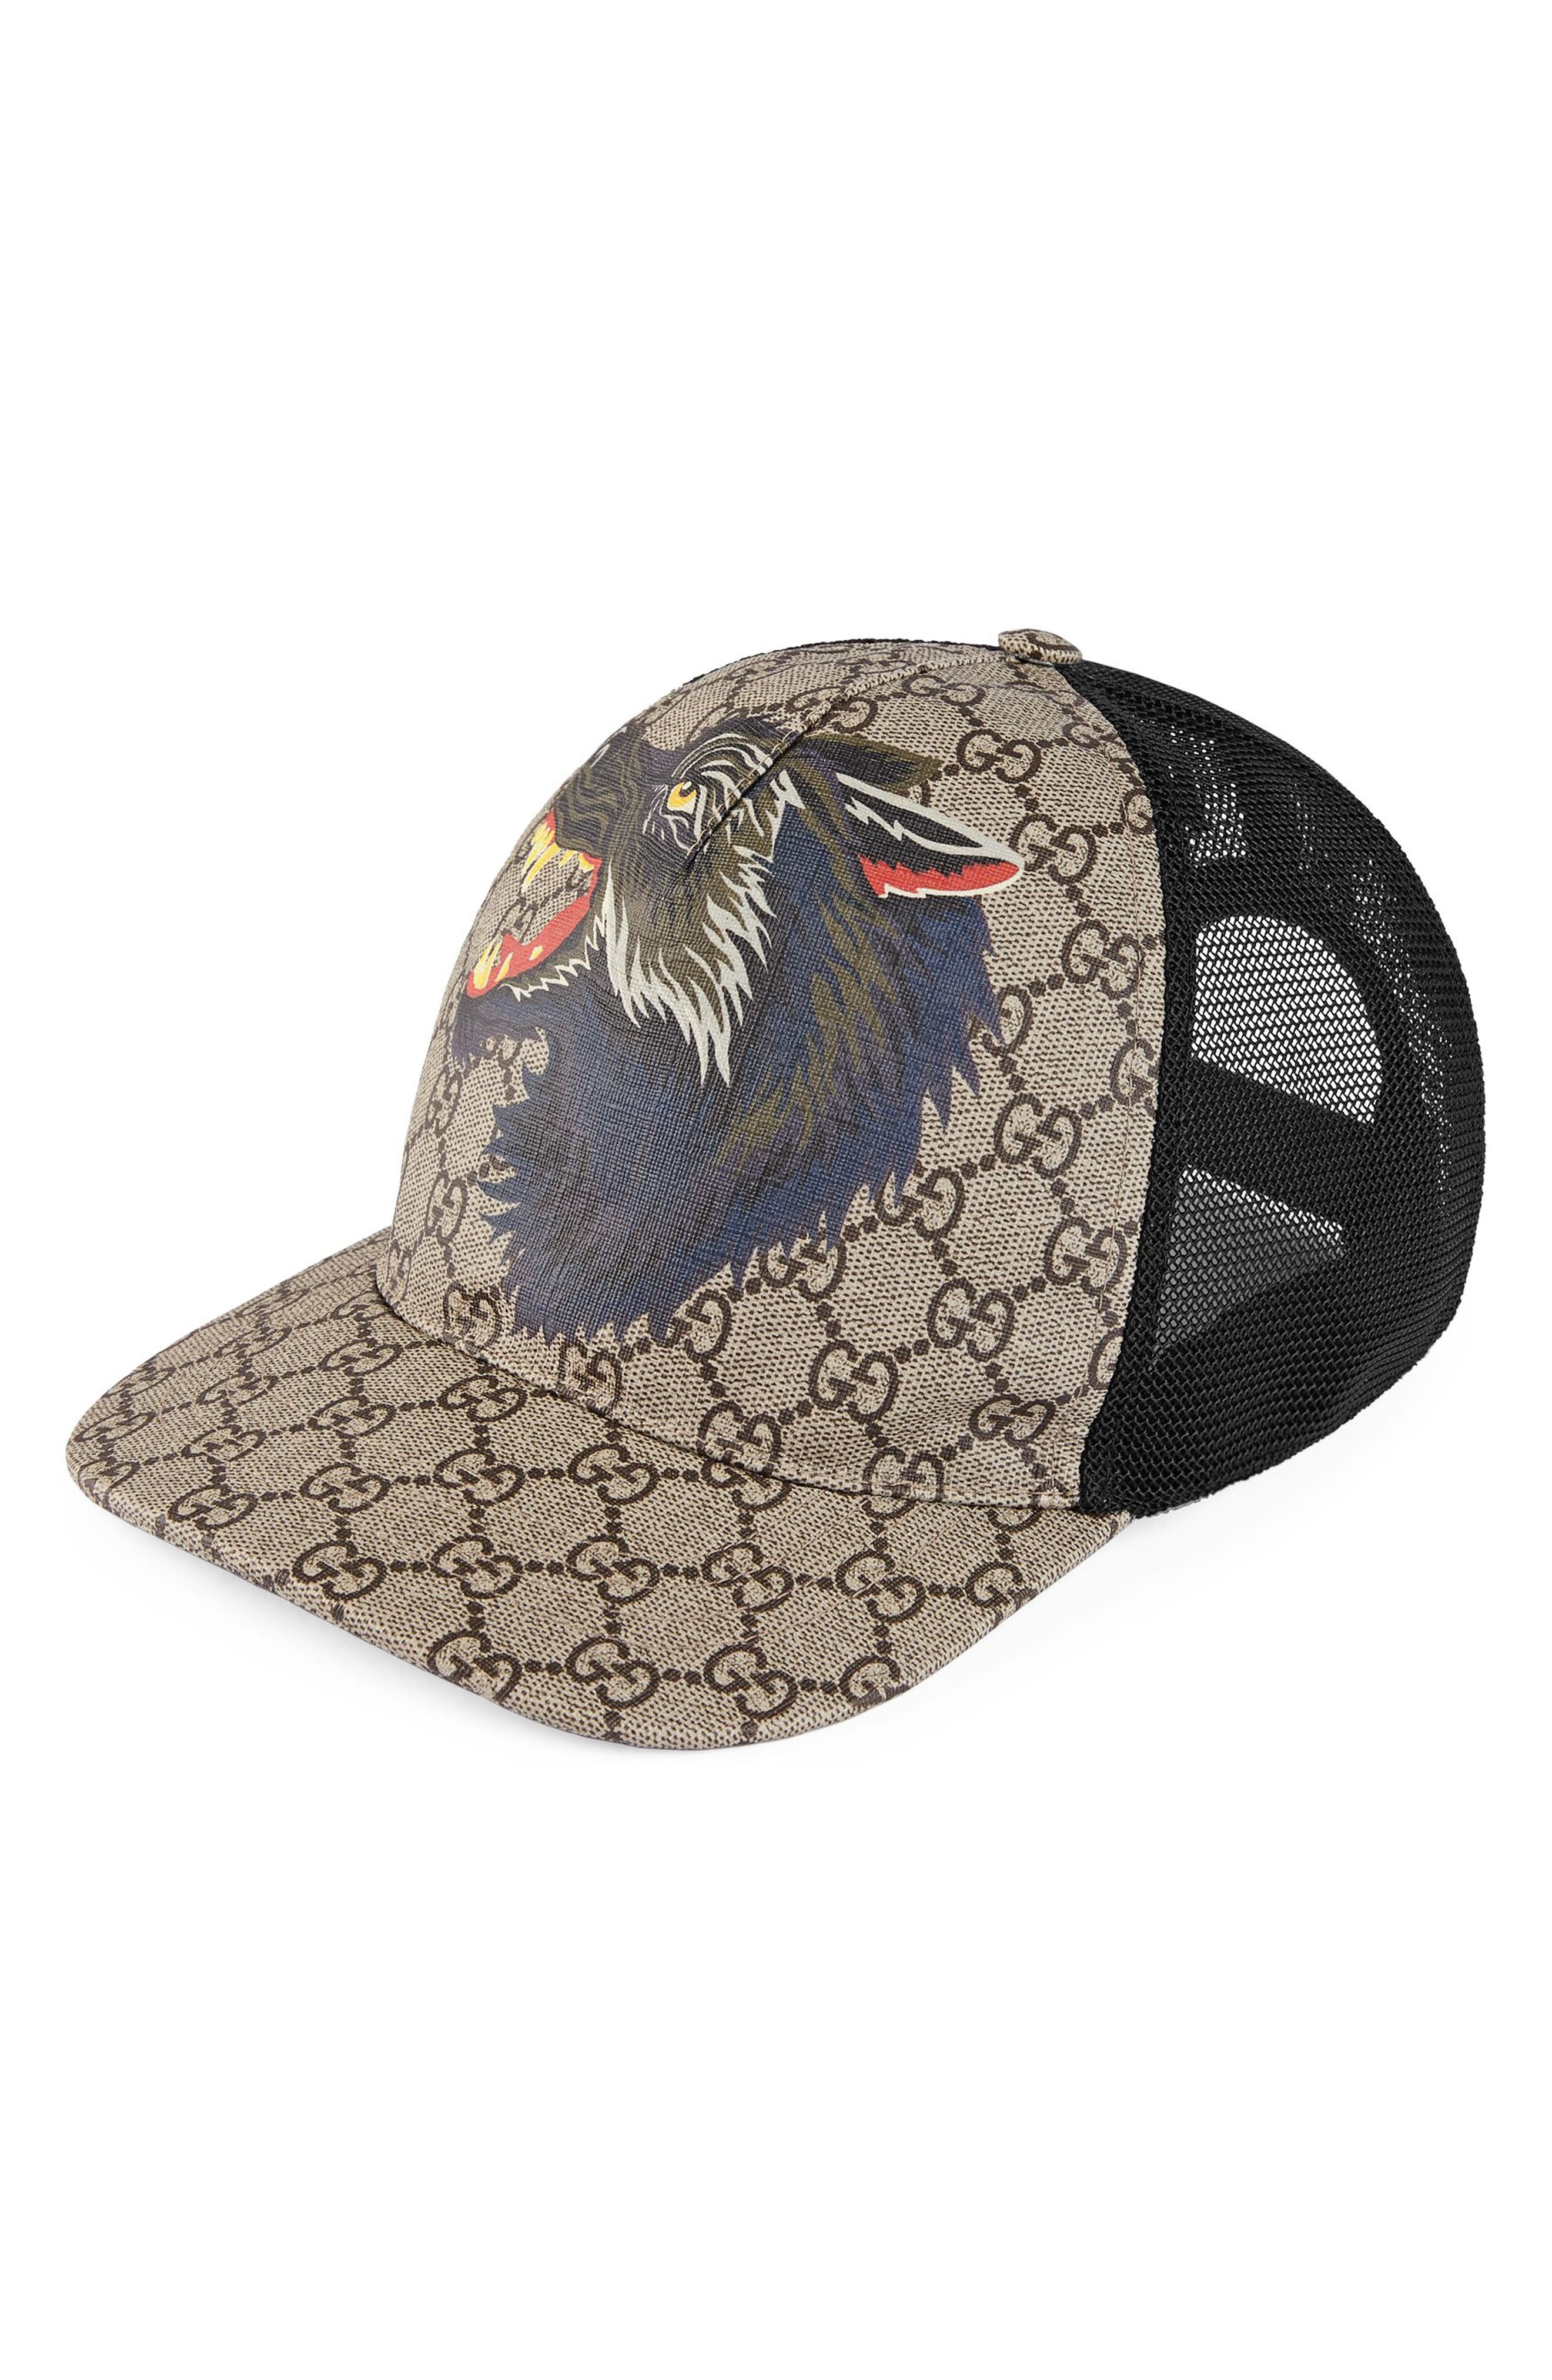 Supreme Wolf Trucker Hat,                             Main thumbnail 1, color,                             207